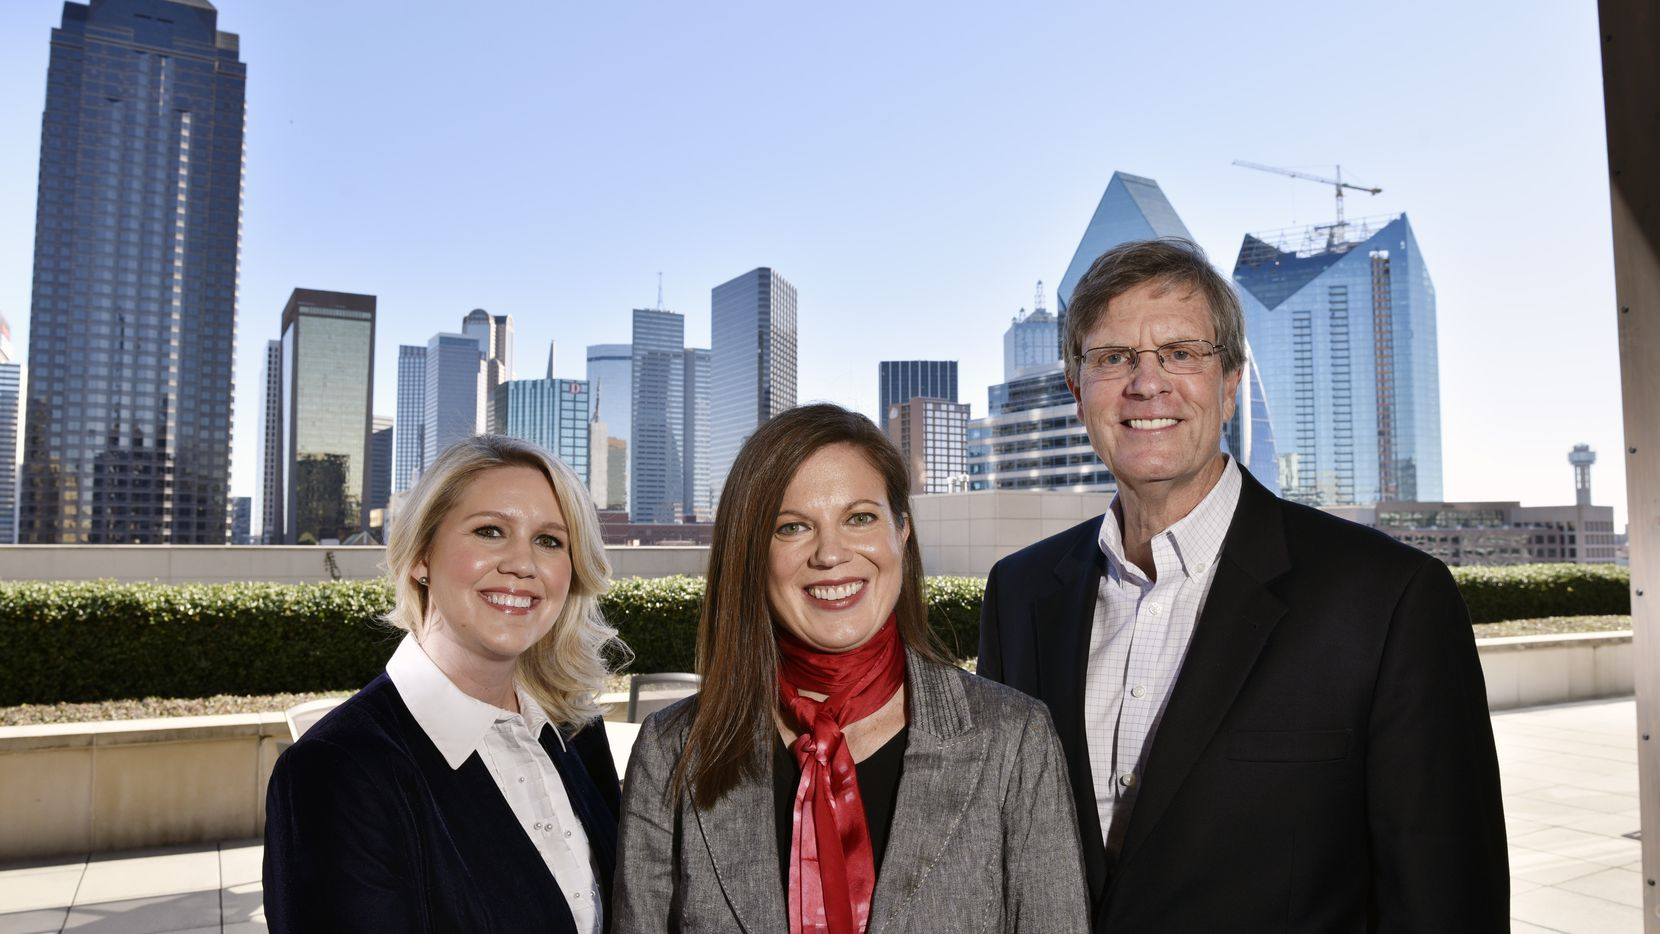 Kelly Rentzel, center, general counsel for Texas Capital Bank, with a member of her informal support network, Shannon Wherry, director of communications for Texas Capital Bank, and Kelly's father, Chris Rentzel, at the bank's Uptown offices.